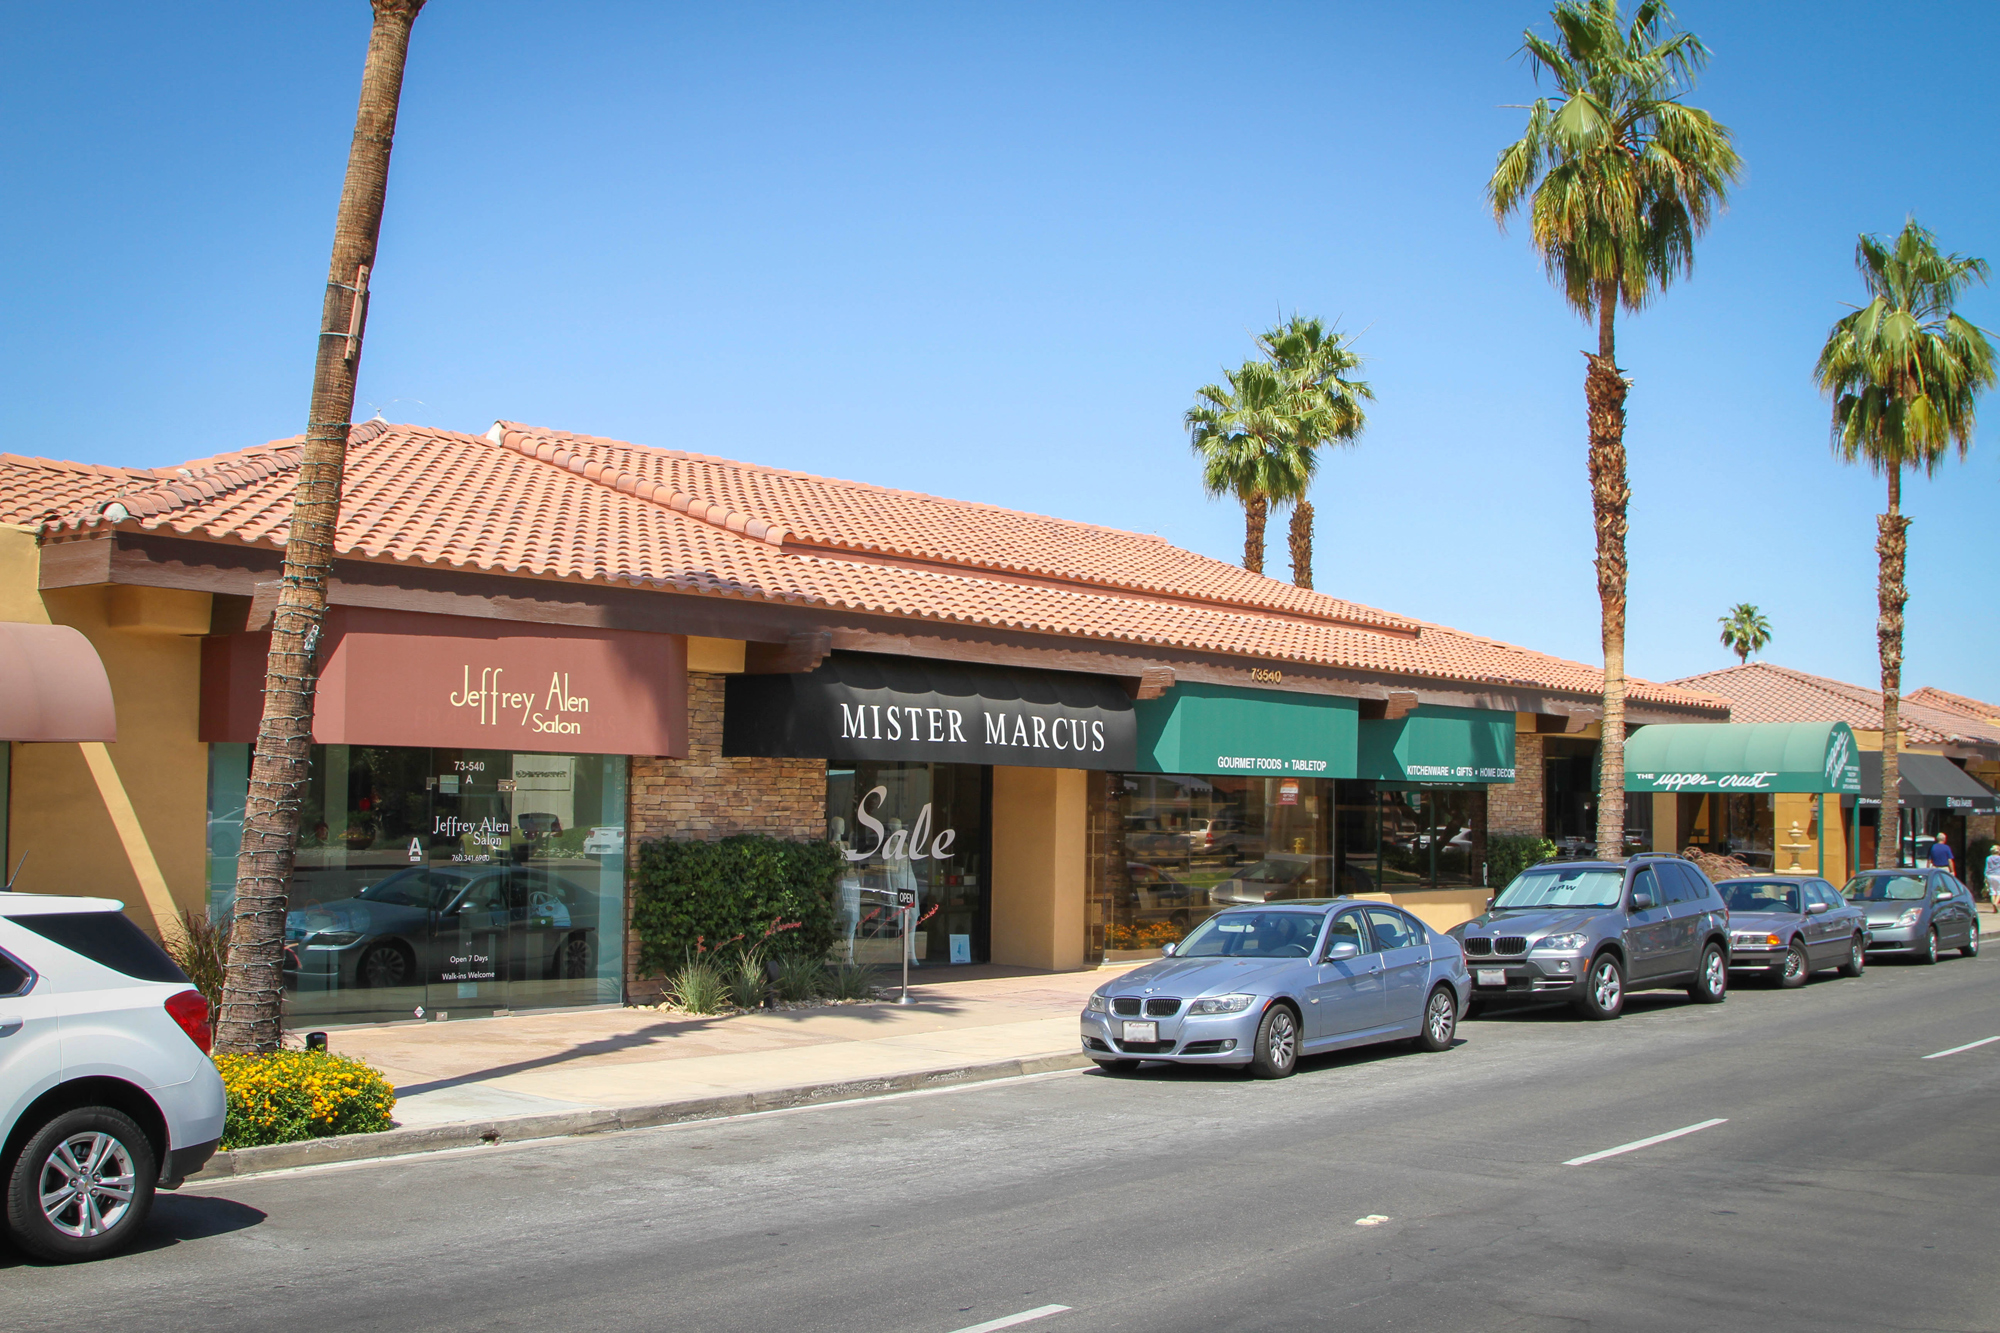 The shops on el paseo palm desert ca commerce realty for Shopping in palm springs ca